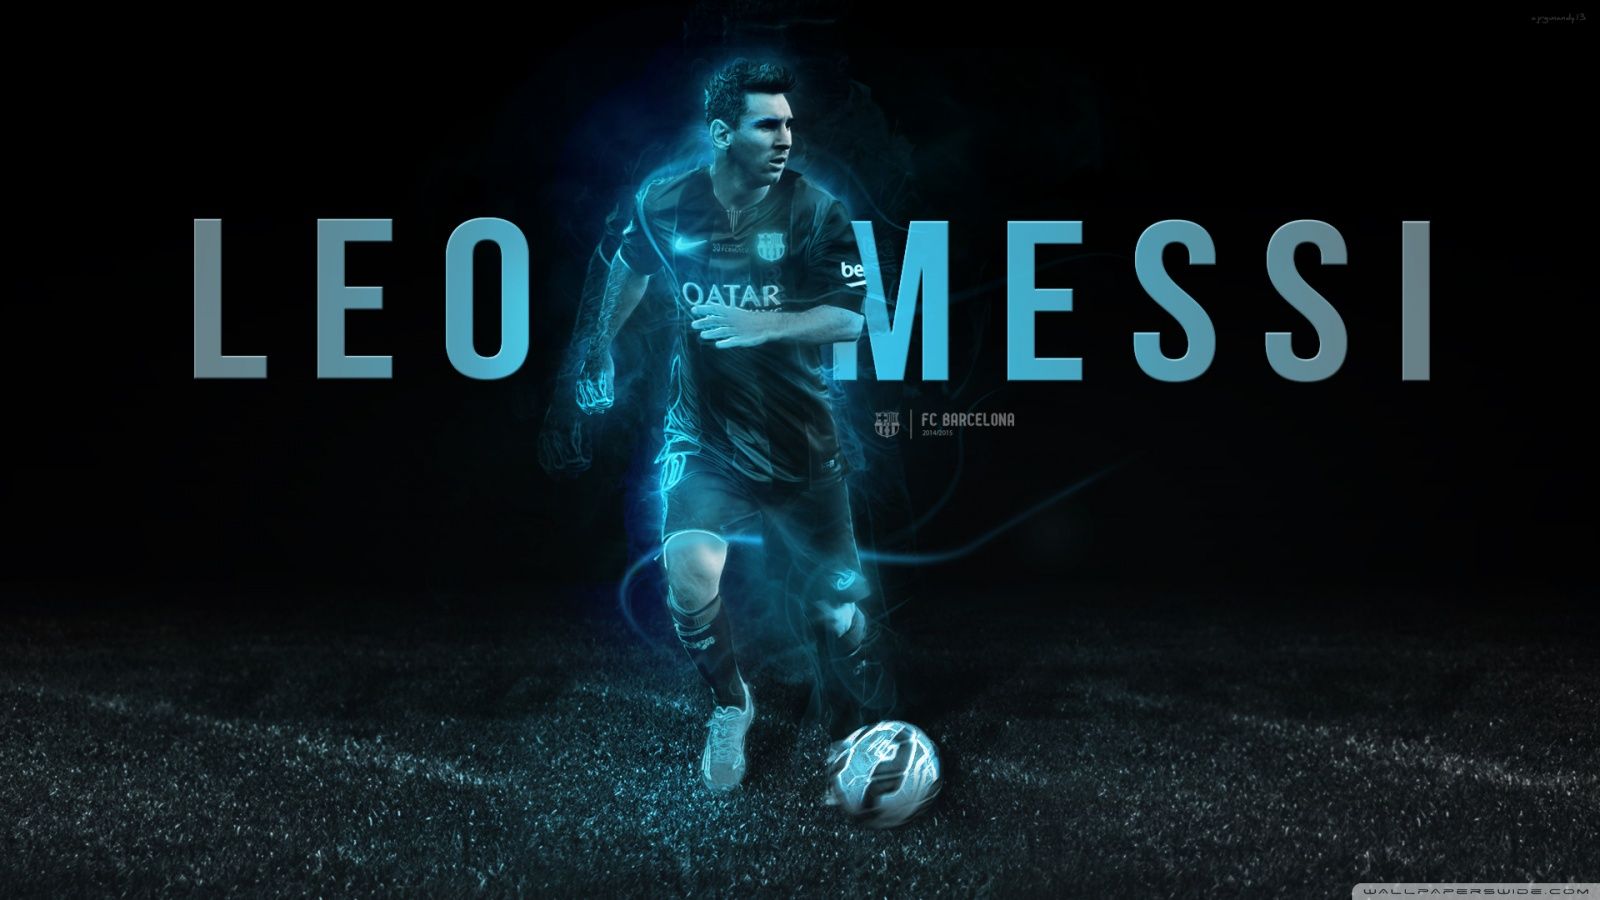 messi pictures latest